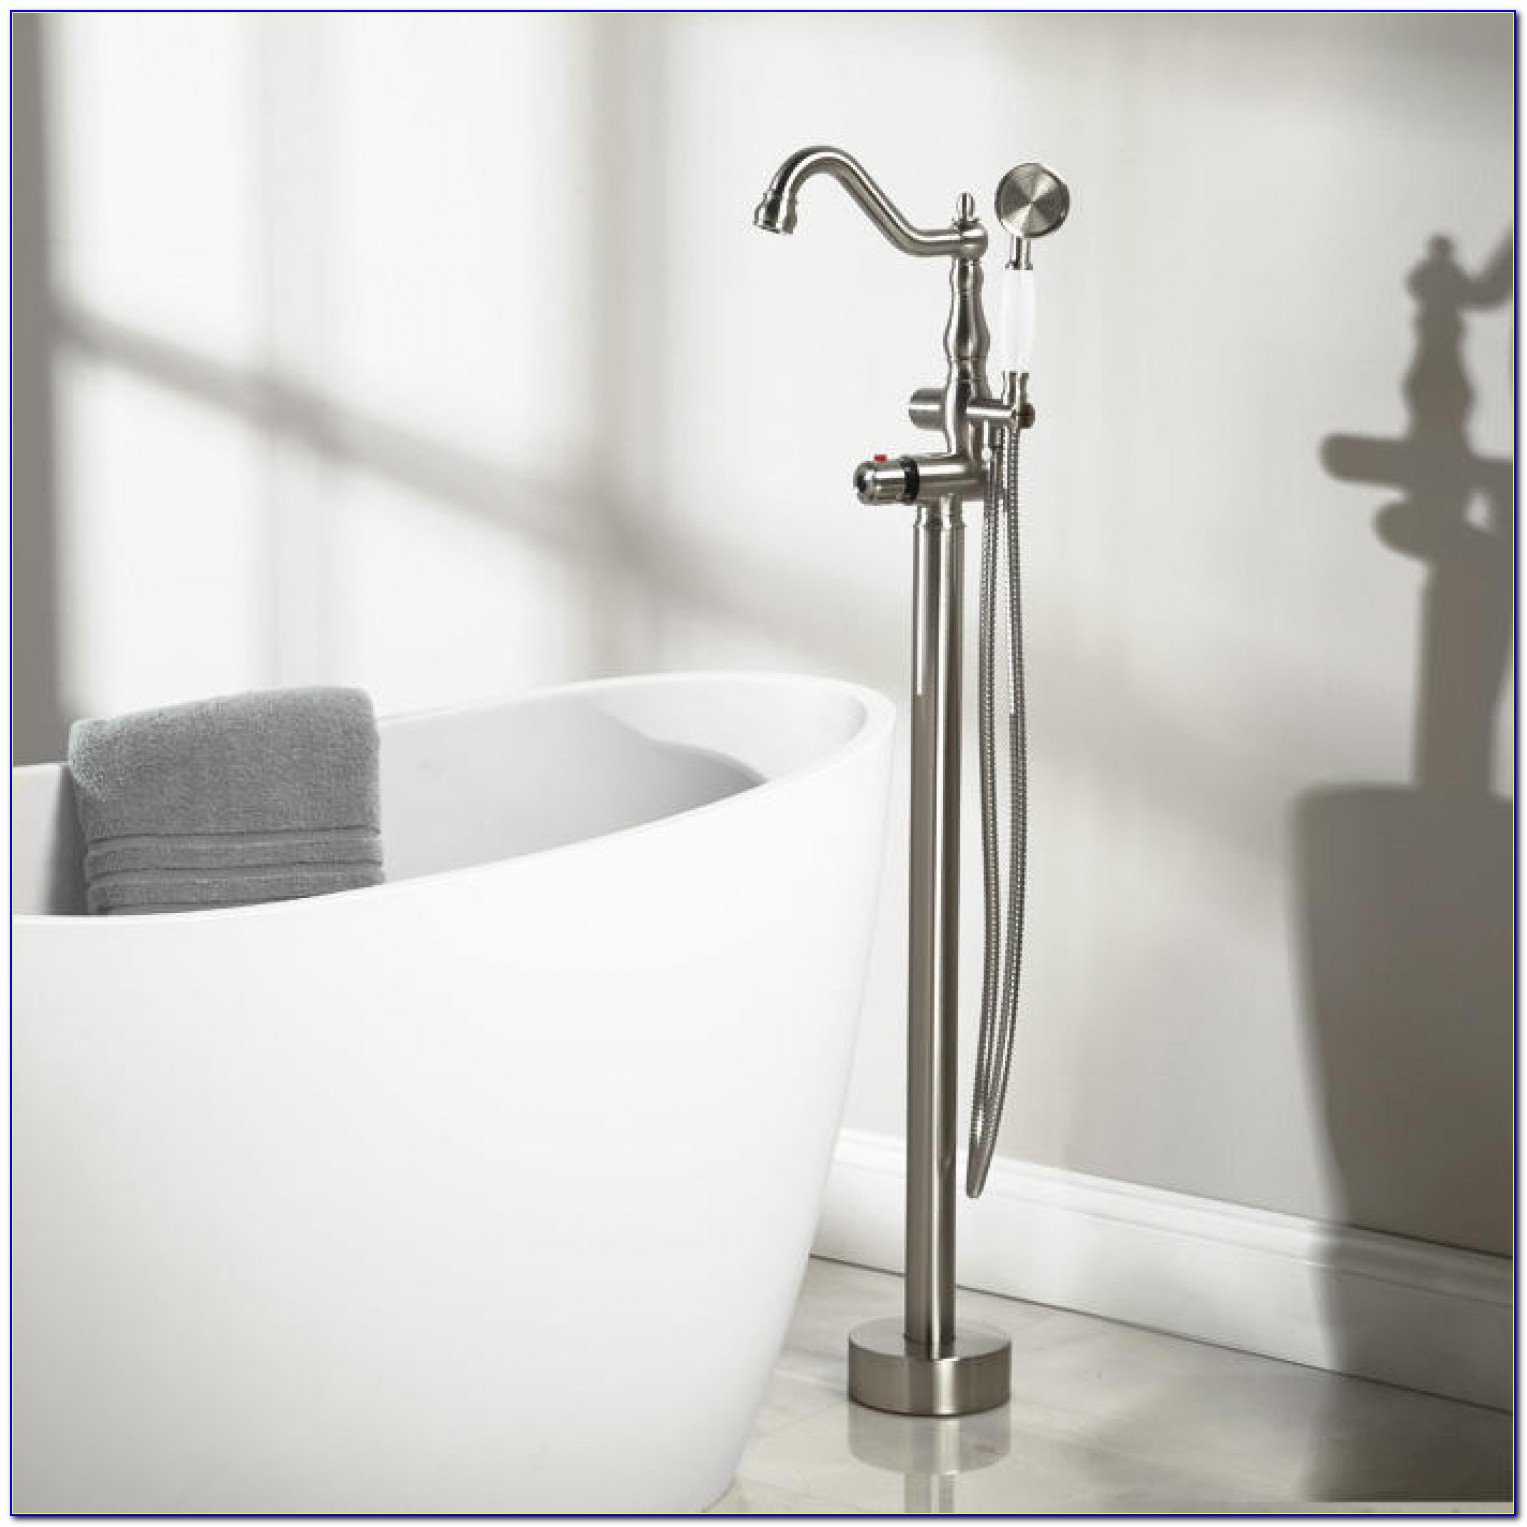 Kohler Purist Freestanding Tub Filler